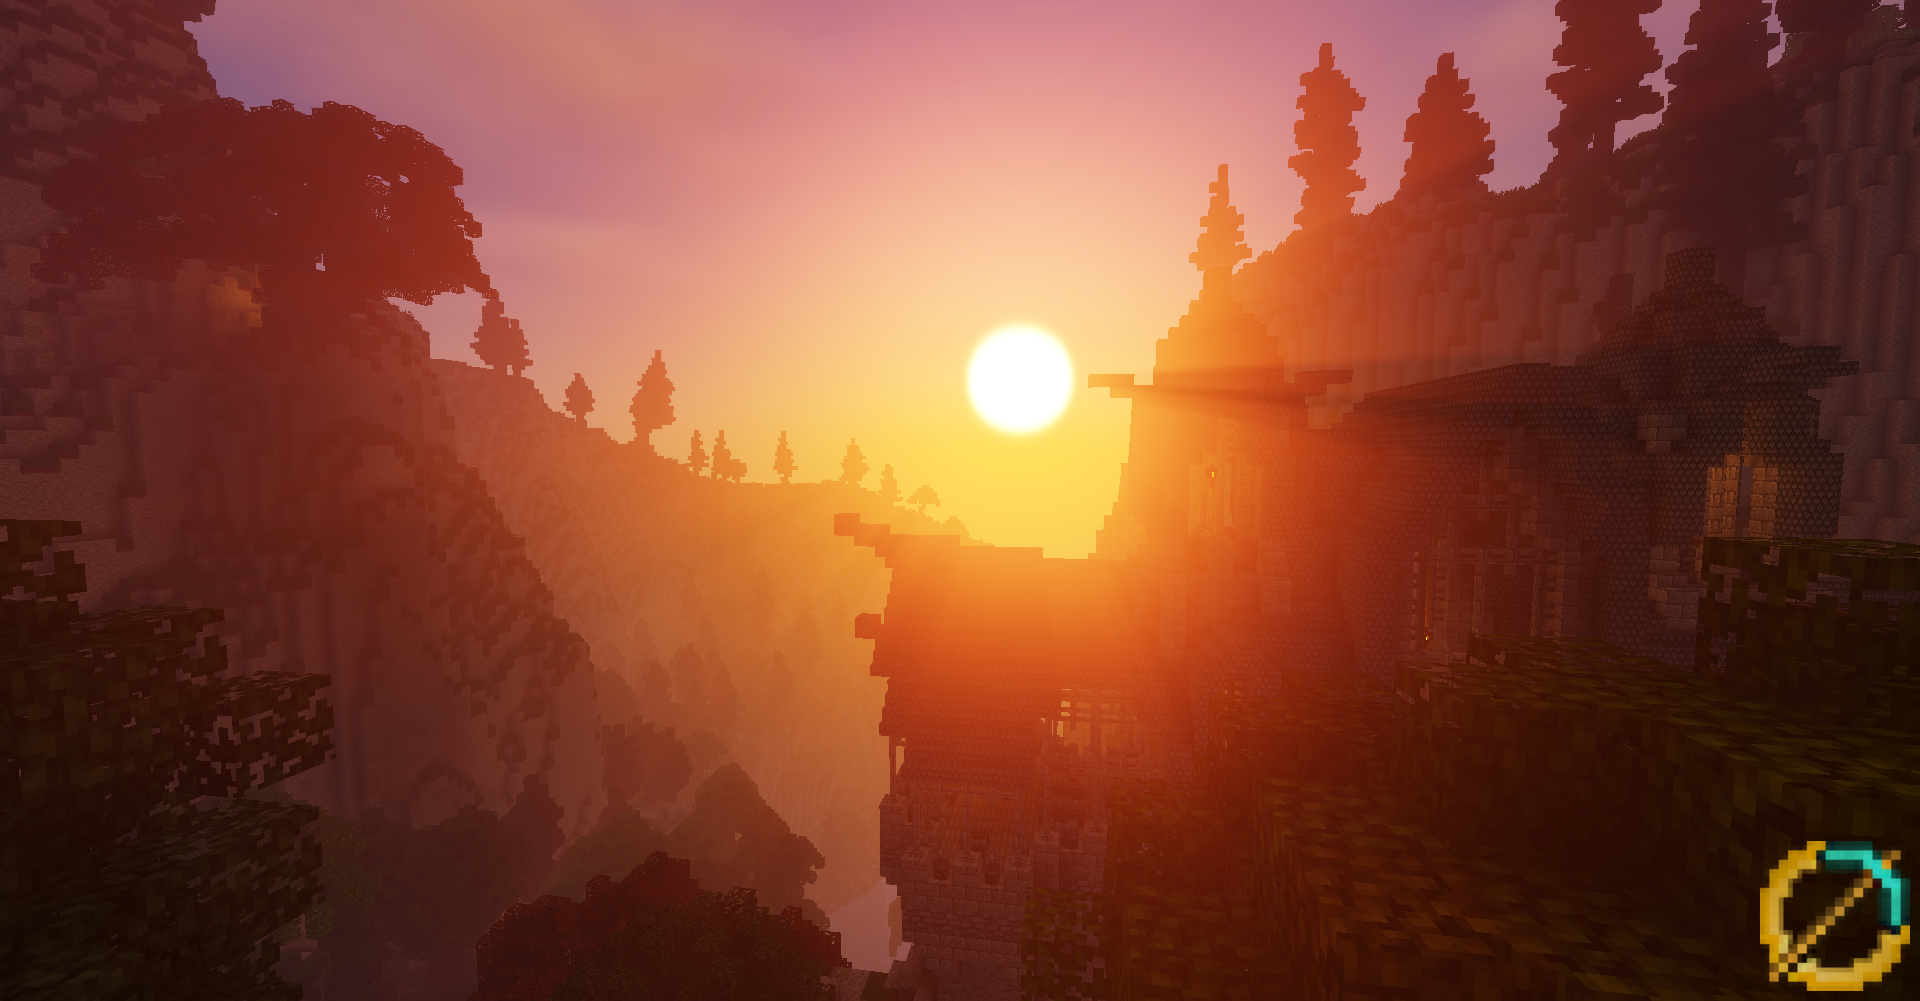 Sunset in Rivendell